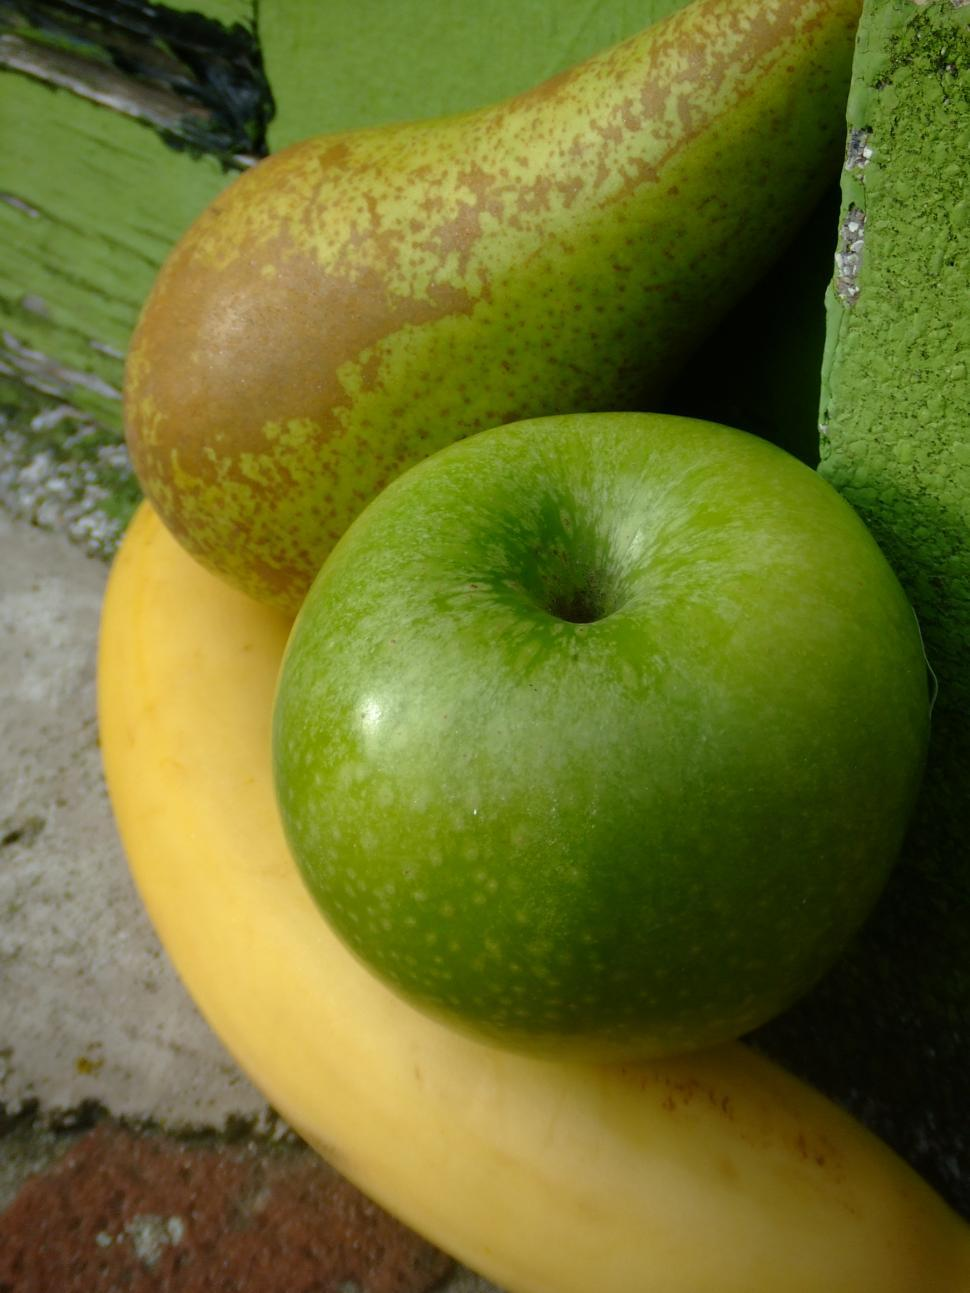 Download Free Stock HD Photo of meet my friends: apple,banana and pear Online